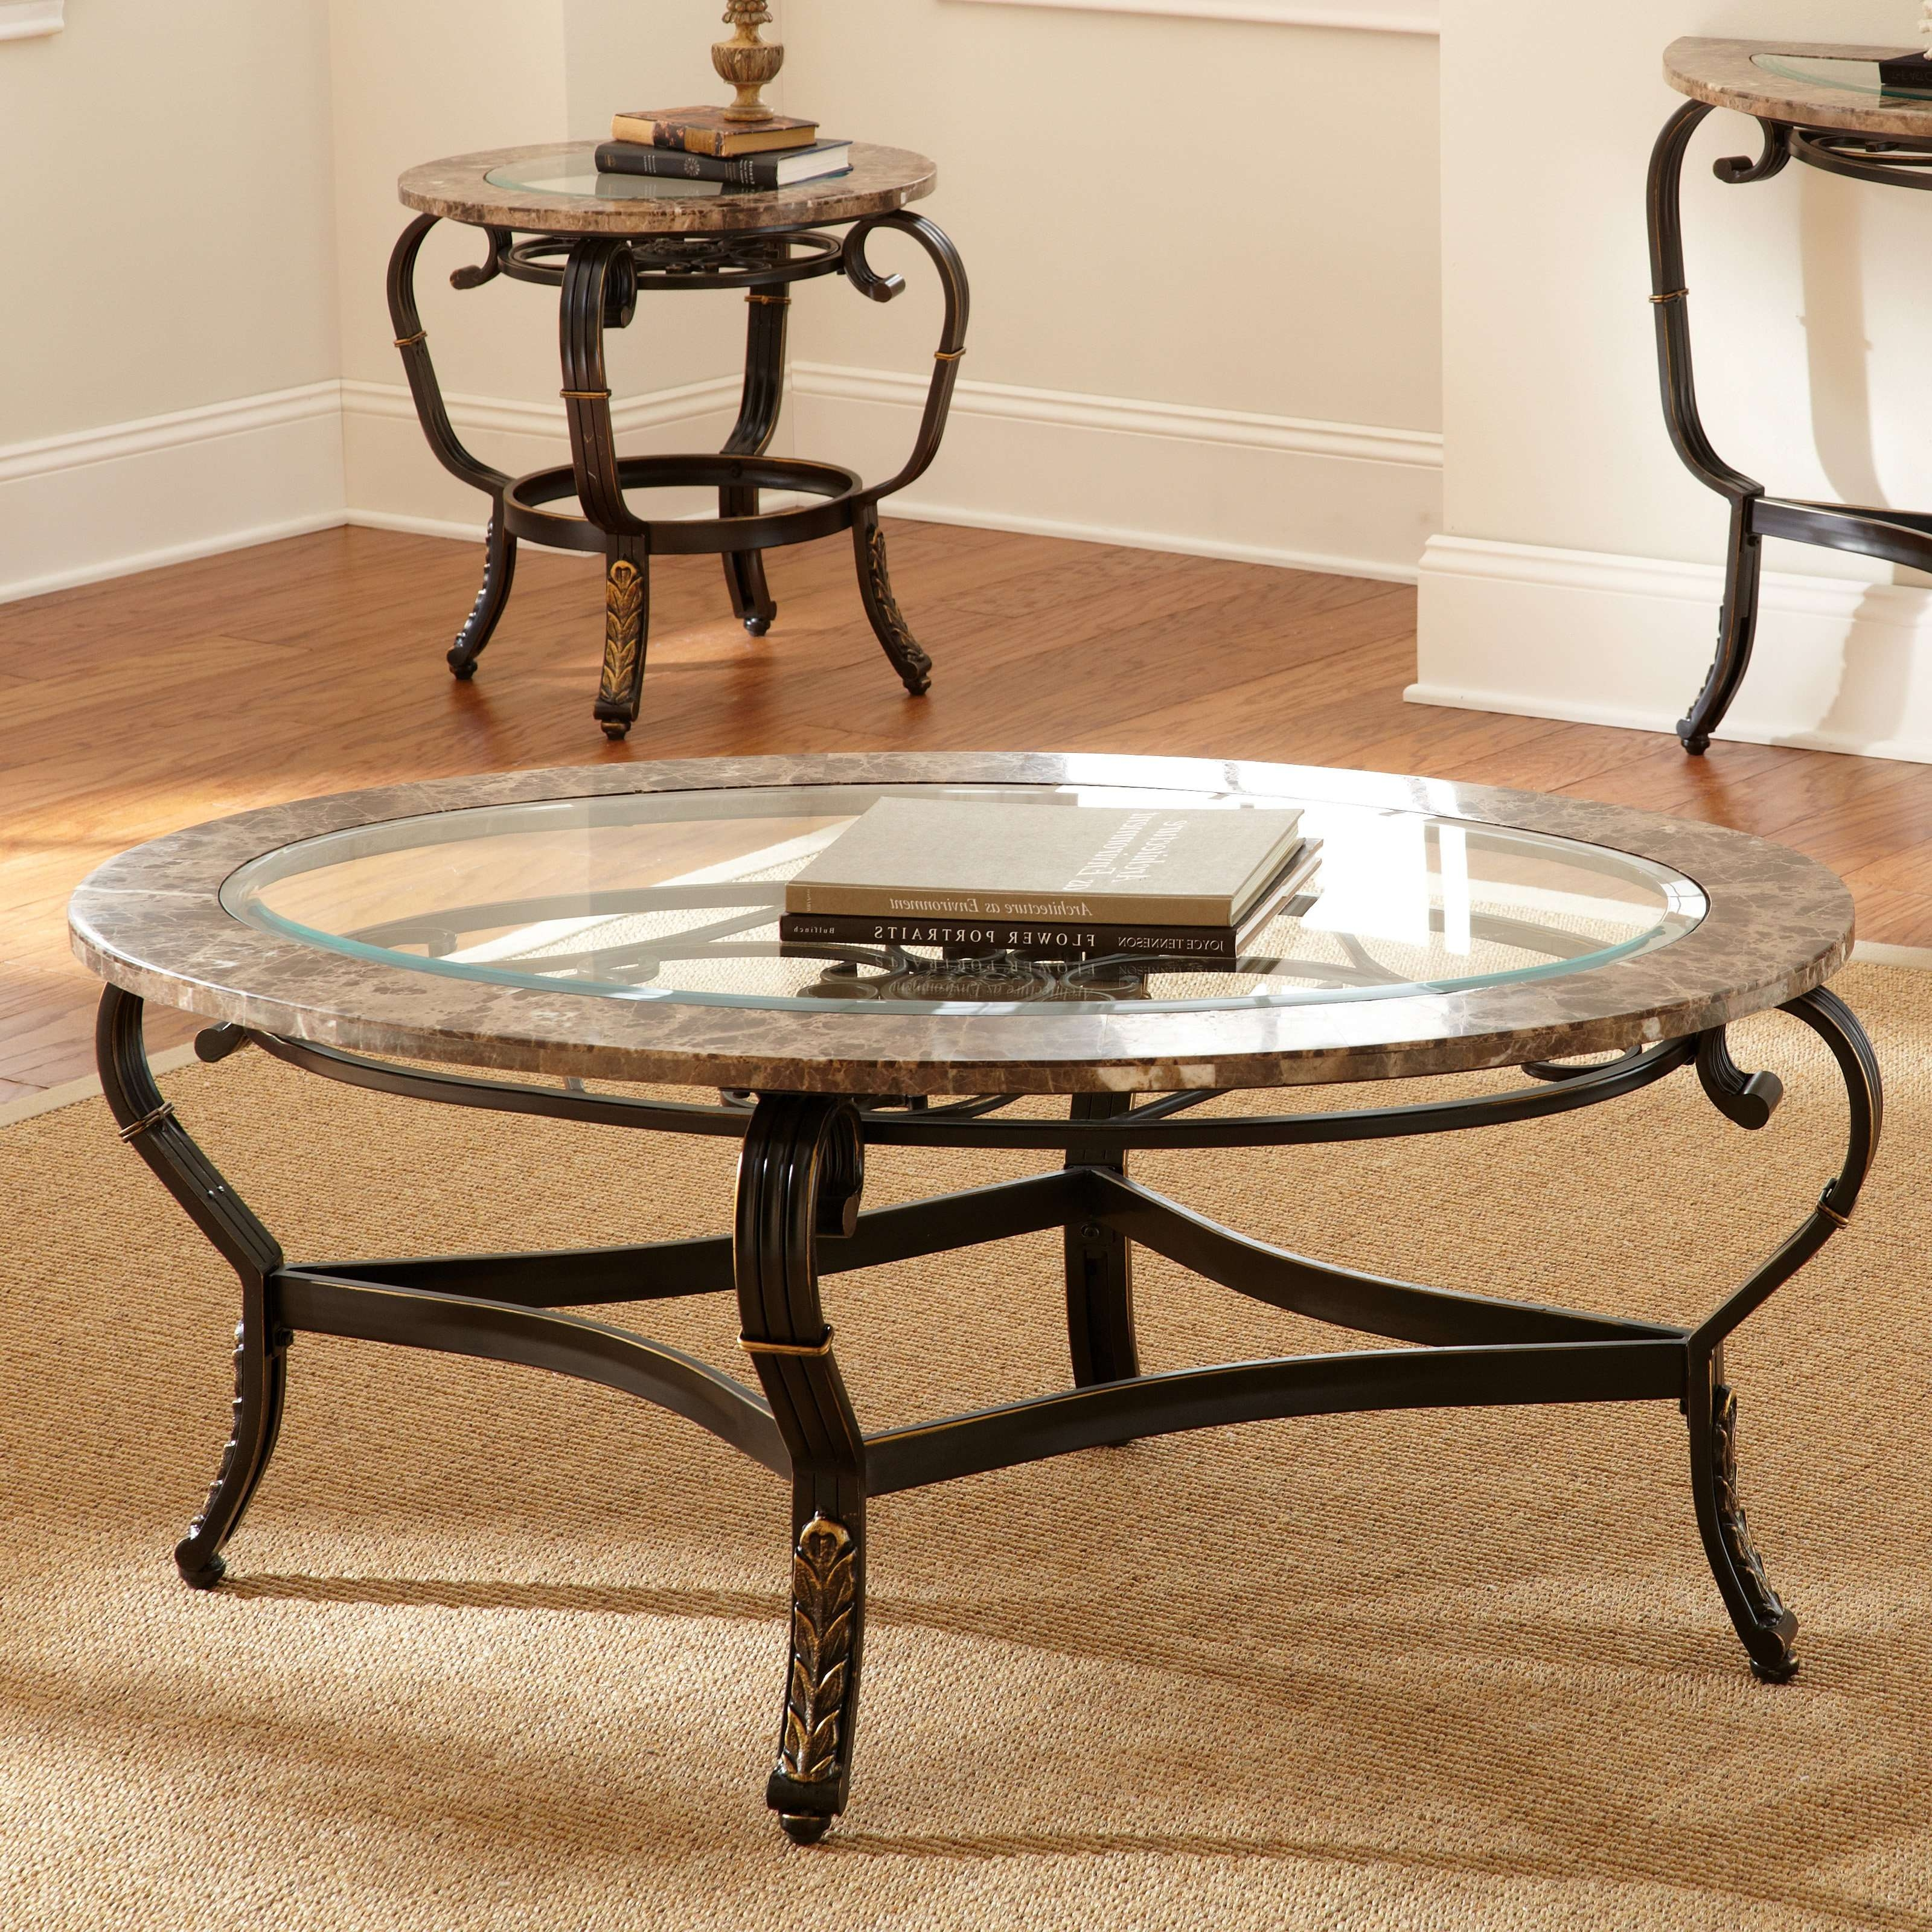 Latest Marble Base Glass Top Coffee Table Intended For Glass Top Coffee Table With Black Marble Base • Coffee Table Ideas (View 6 of 20)